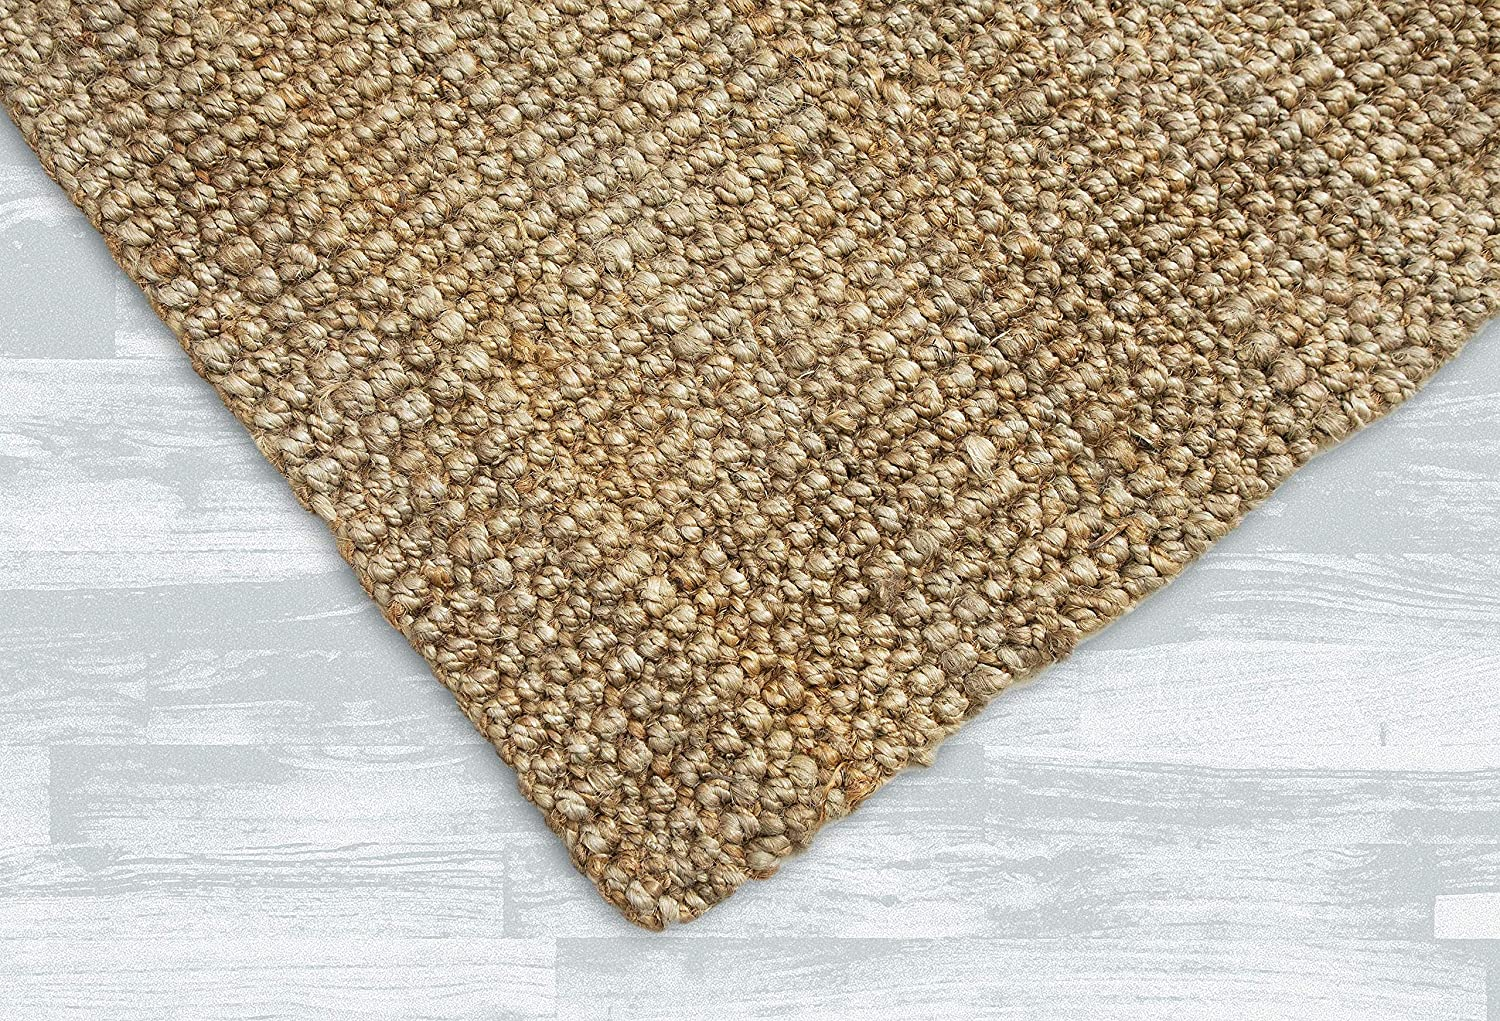 Amazon Com Irongate Classic Jute Solid Handwoven Reversible Ribbed Jute Area Rug 4 X 6 Natural Garden Outdoor